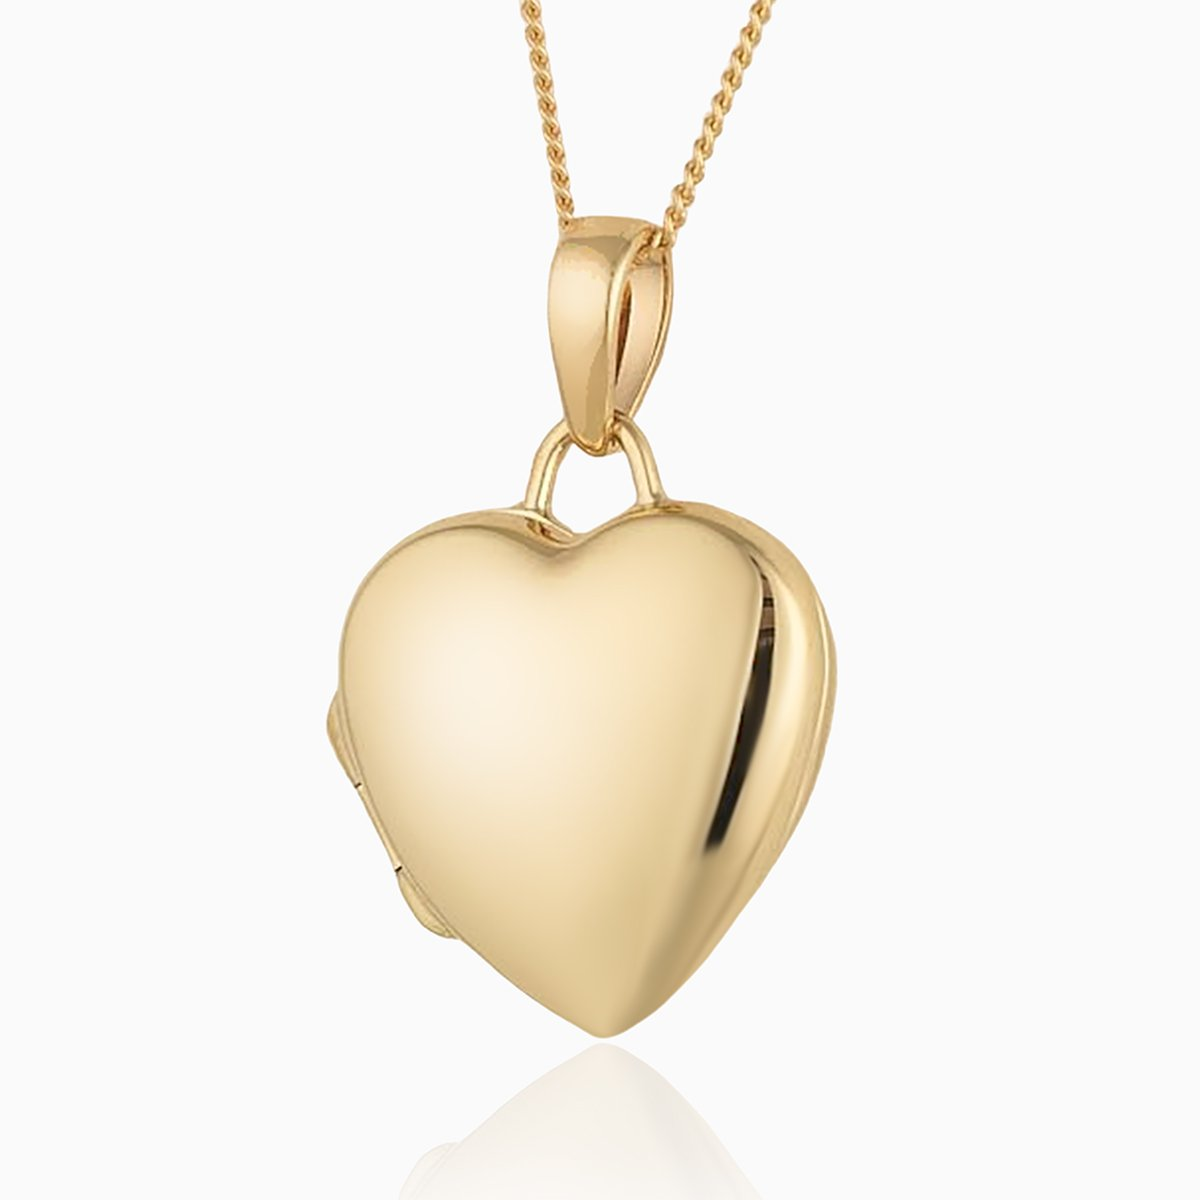 Product title: Petite Gold Heart, product type: Locket